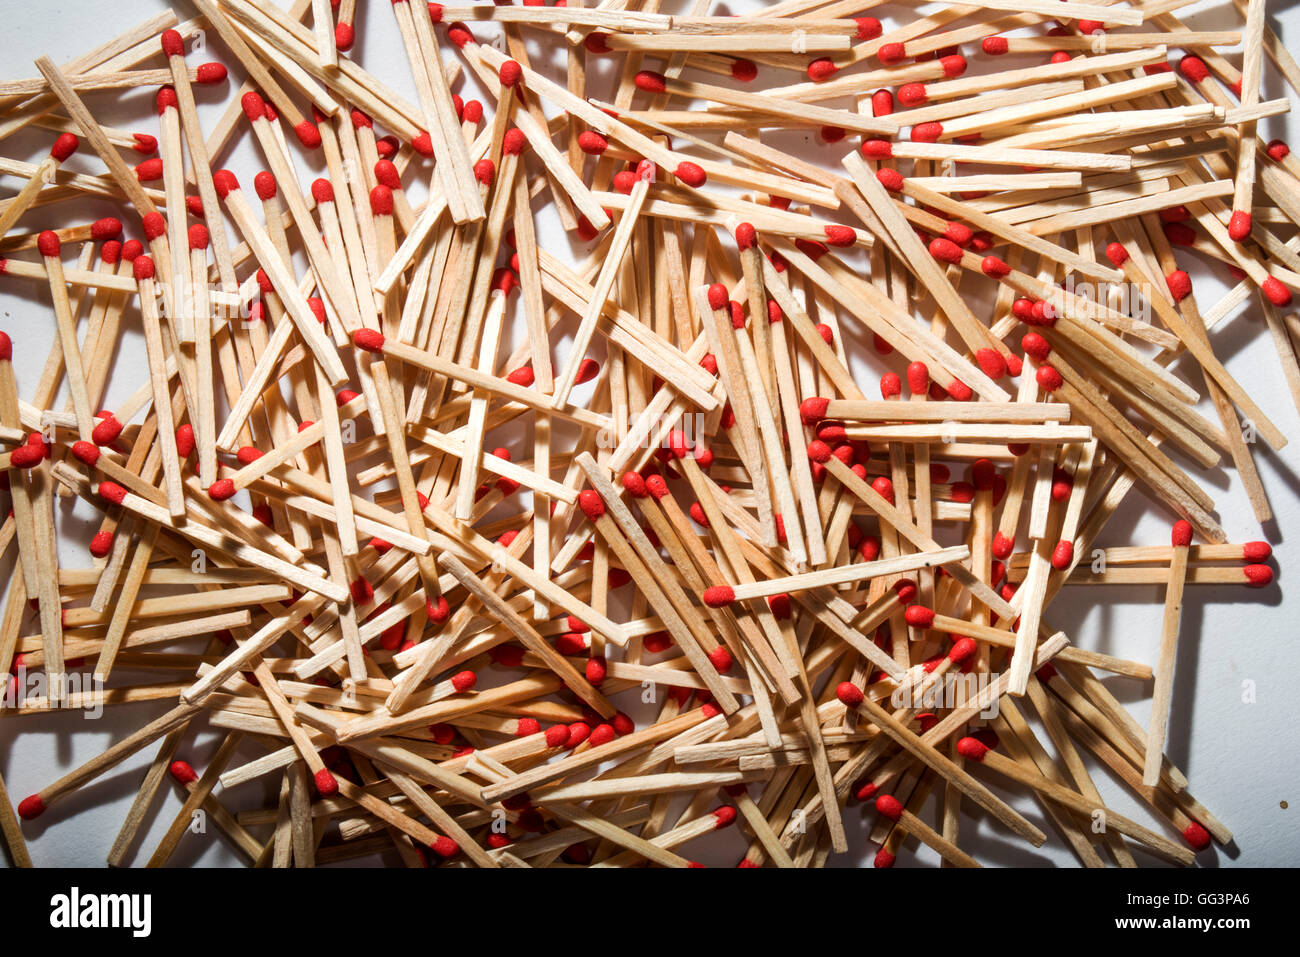 many matches interspersed occupying the whole picture - Stock Image